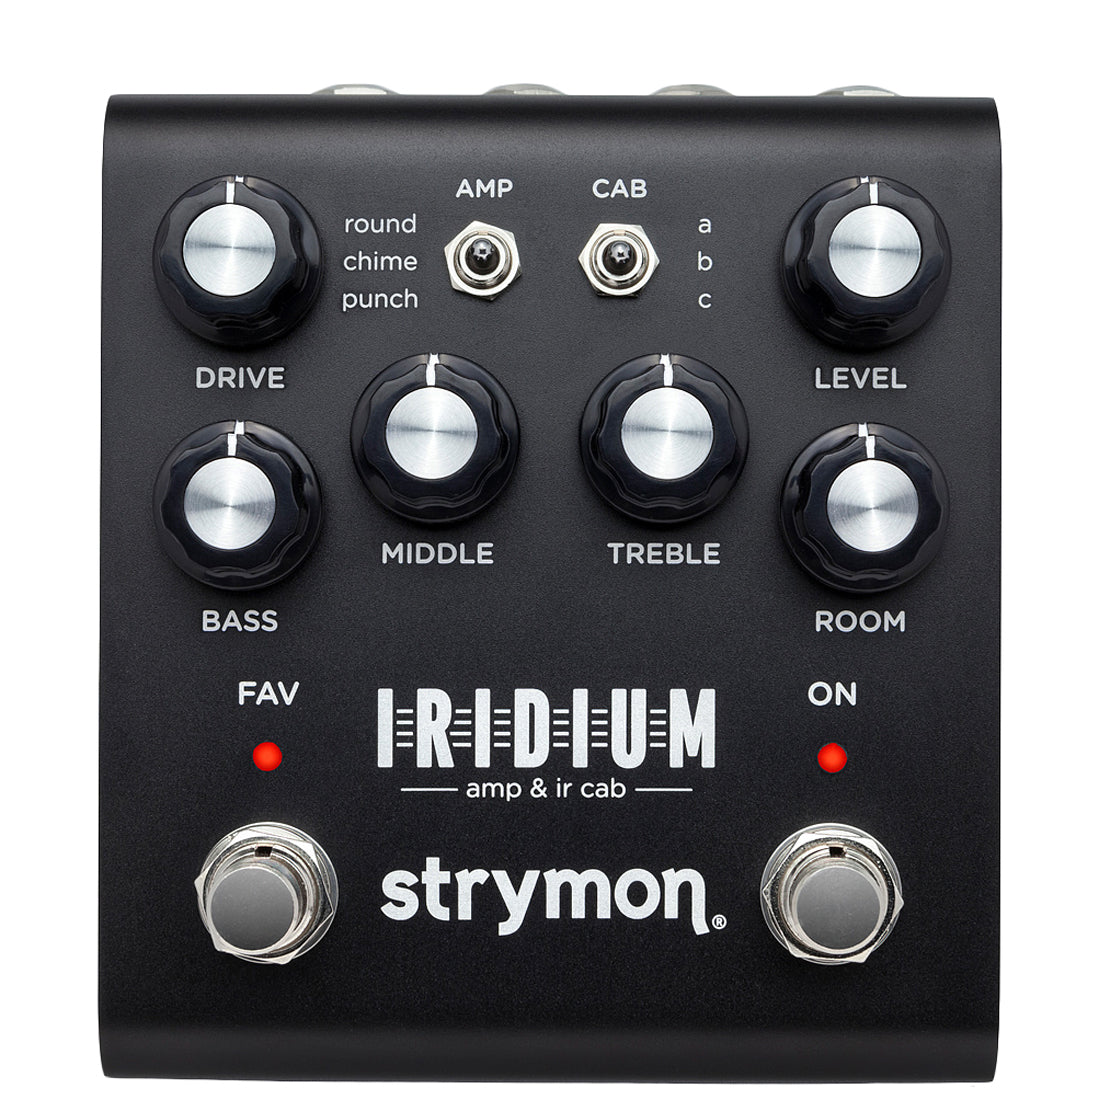 Strymon Iridium Amp and Impulse Response Cab